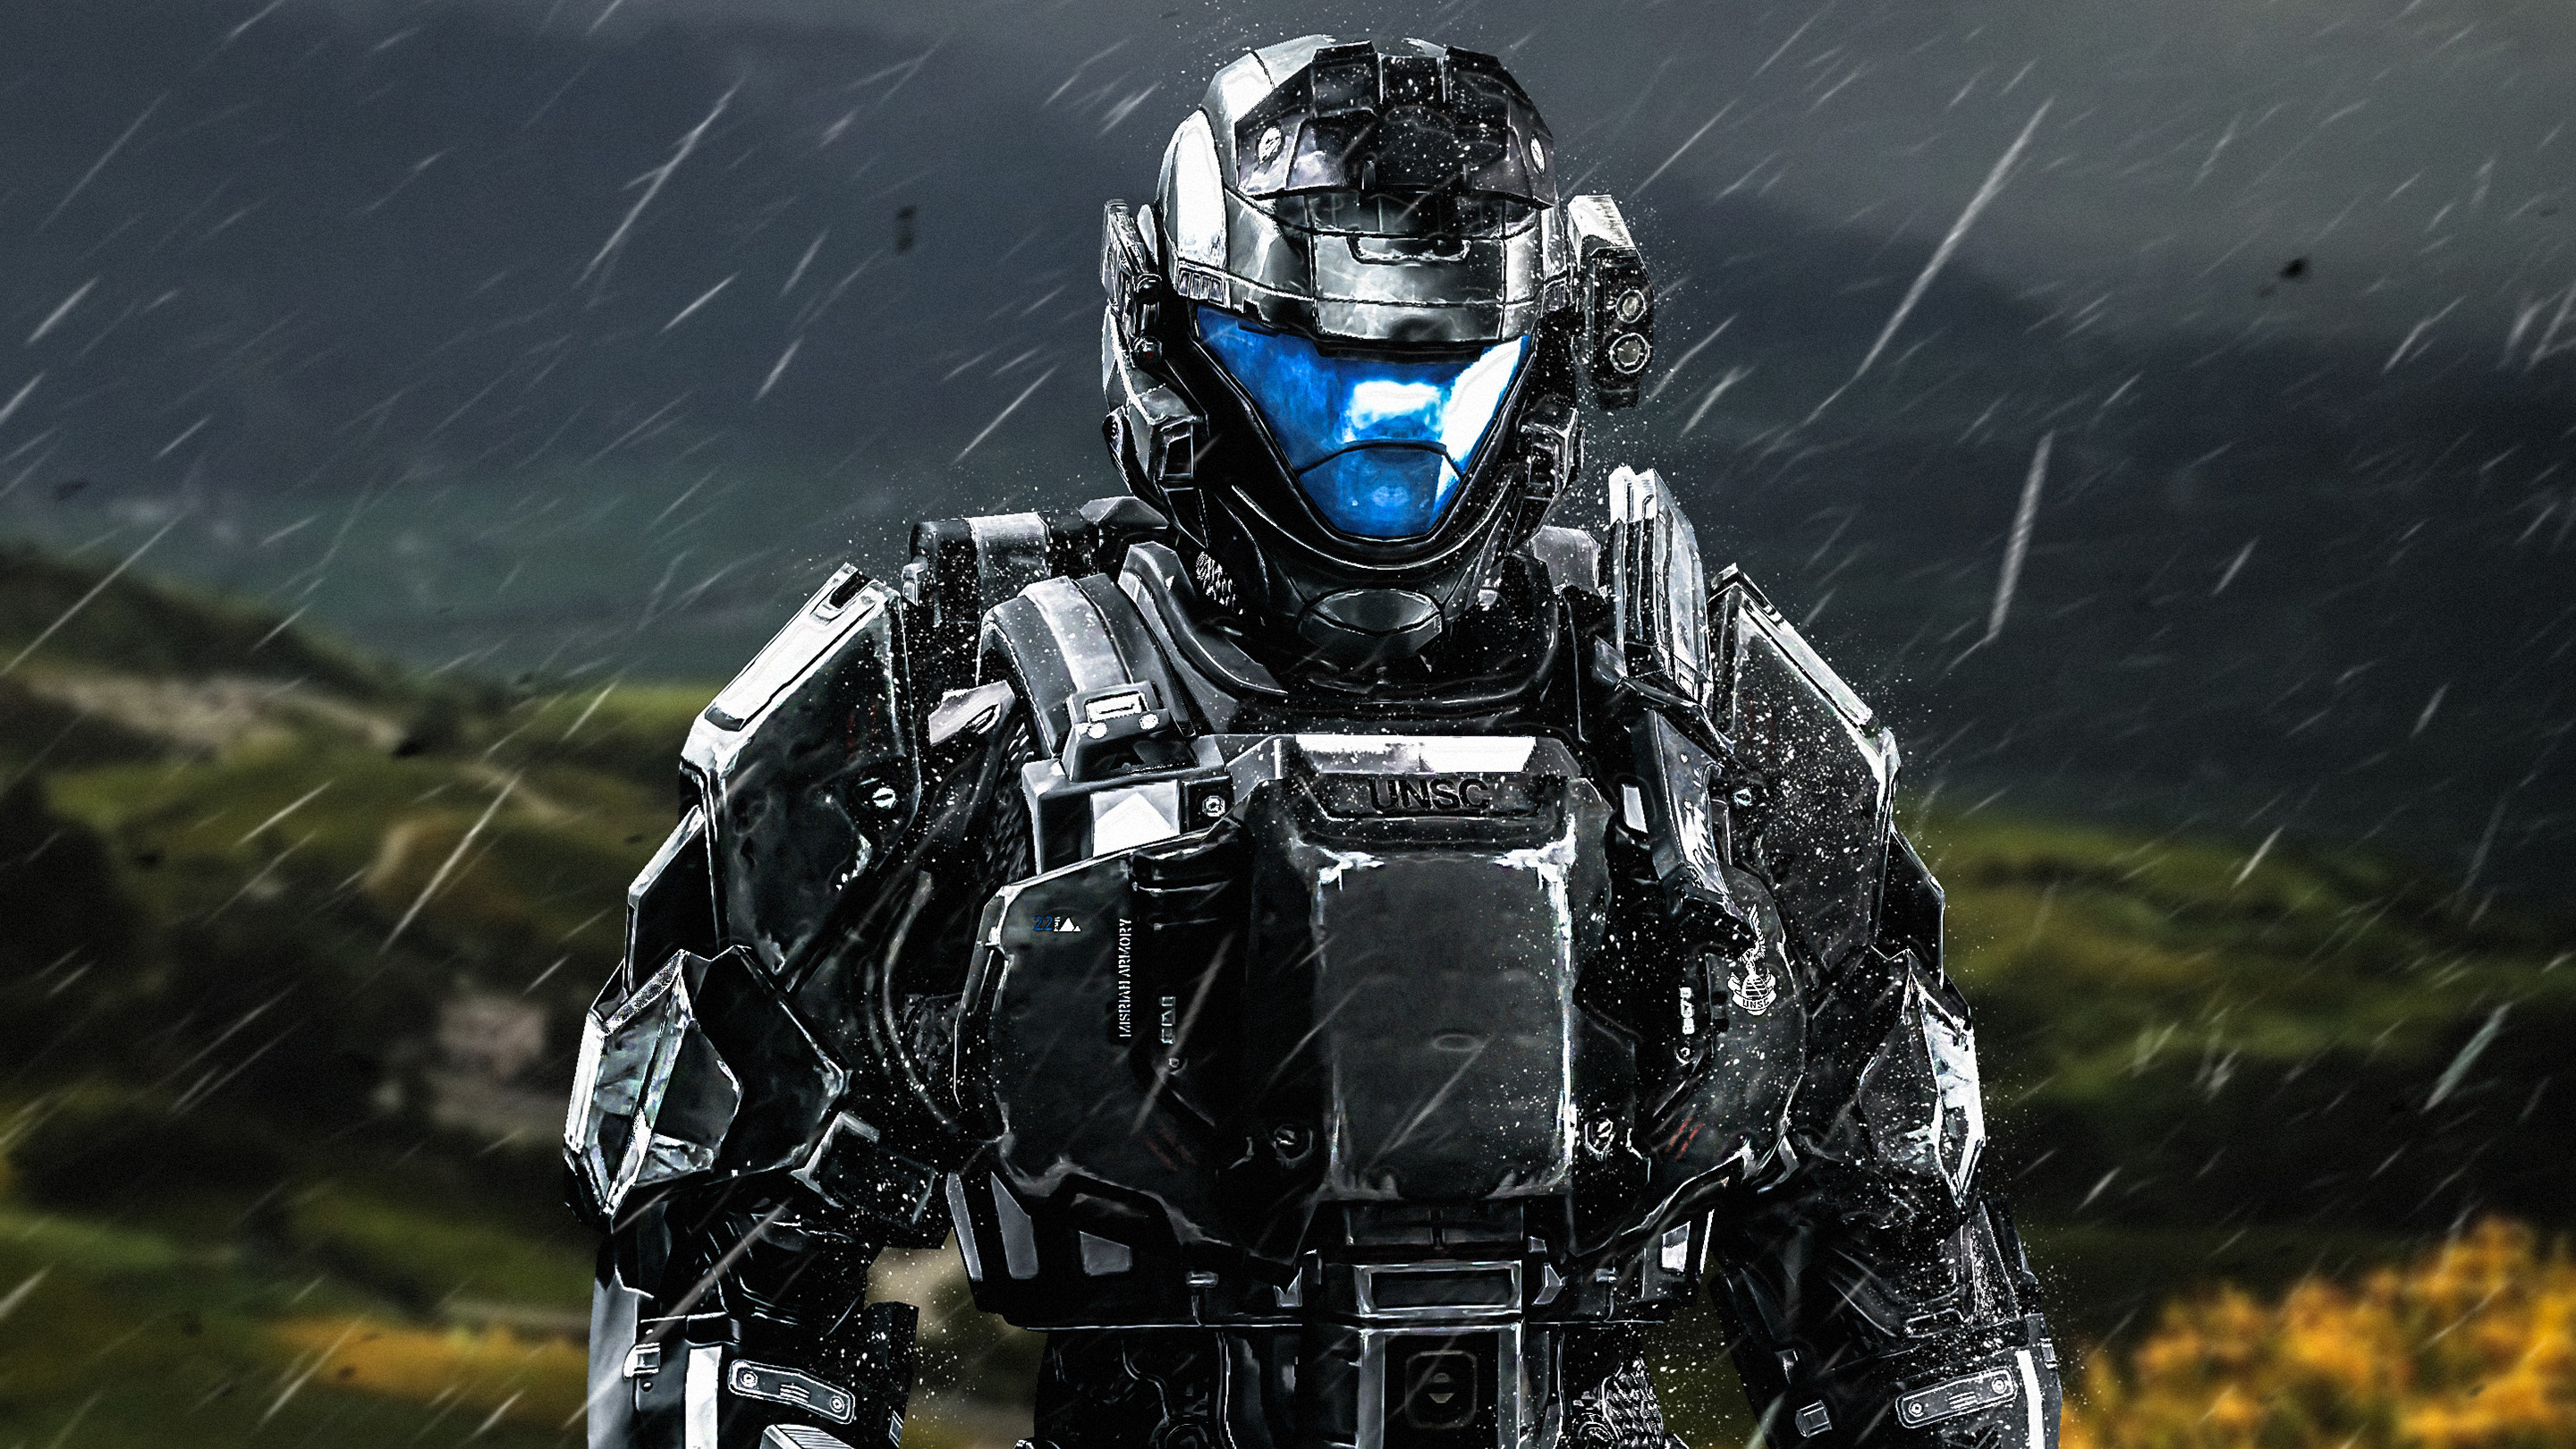 Res: 2880x1620, Halo 3 ODST Spartan Soldier Wallpapers. Â«Â«